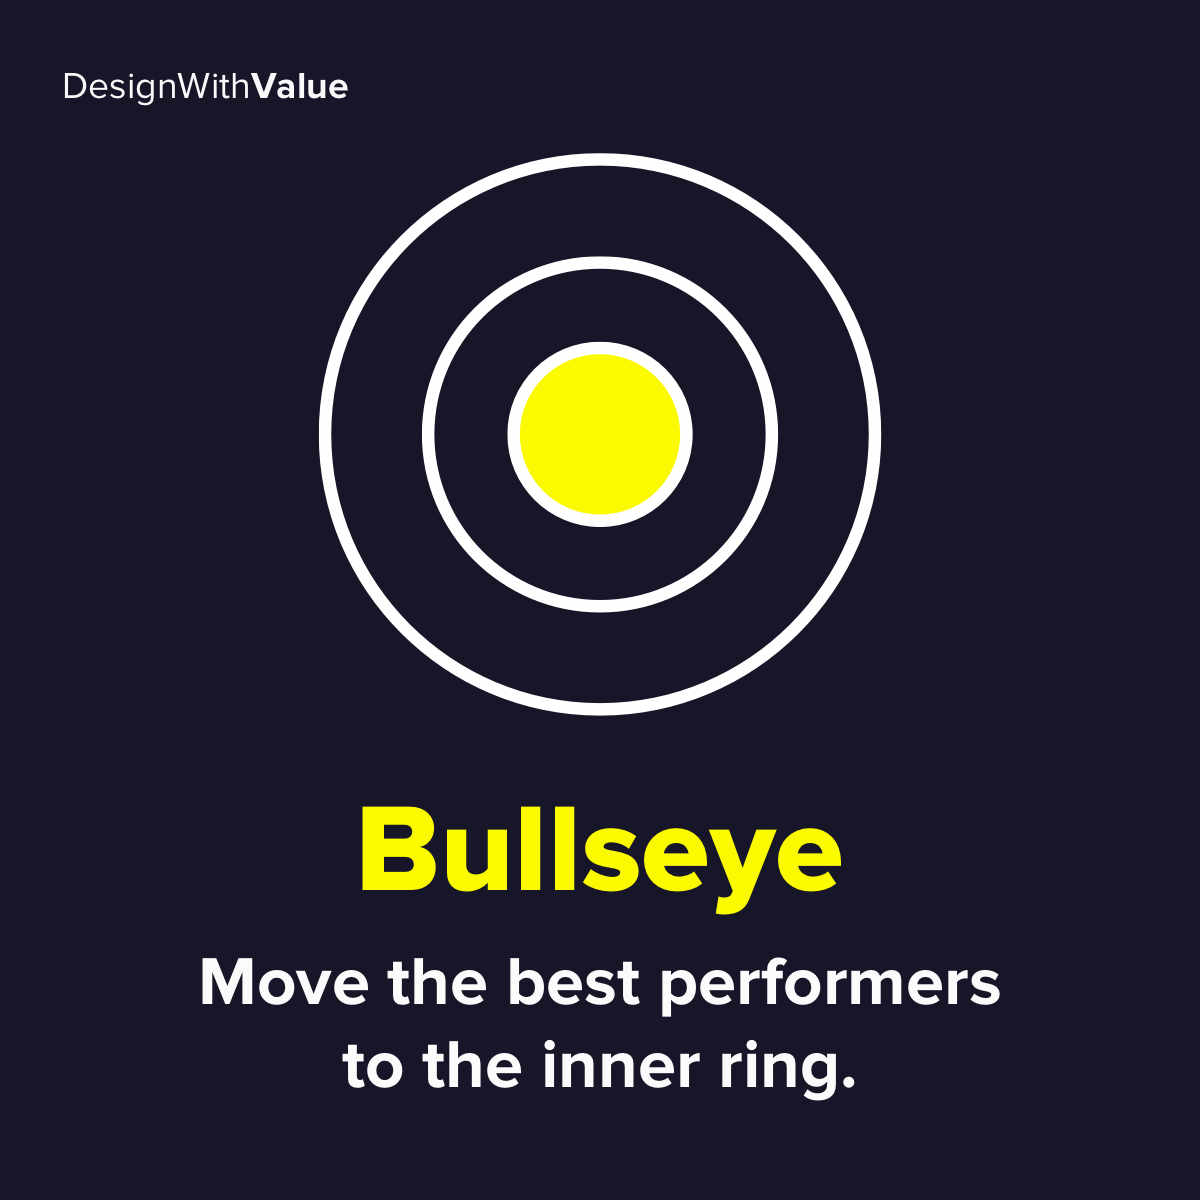 Bullseye: Move the best performers to the inner ring.